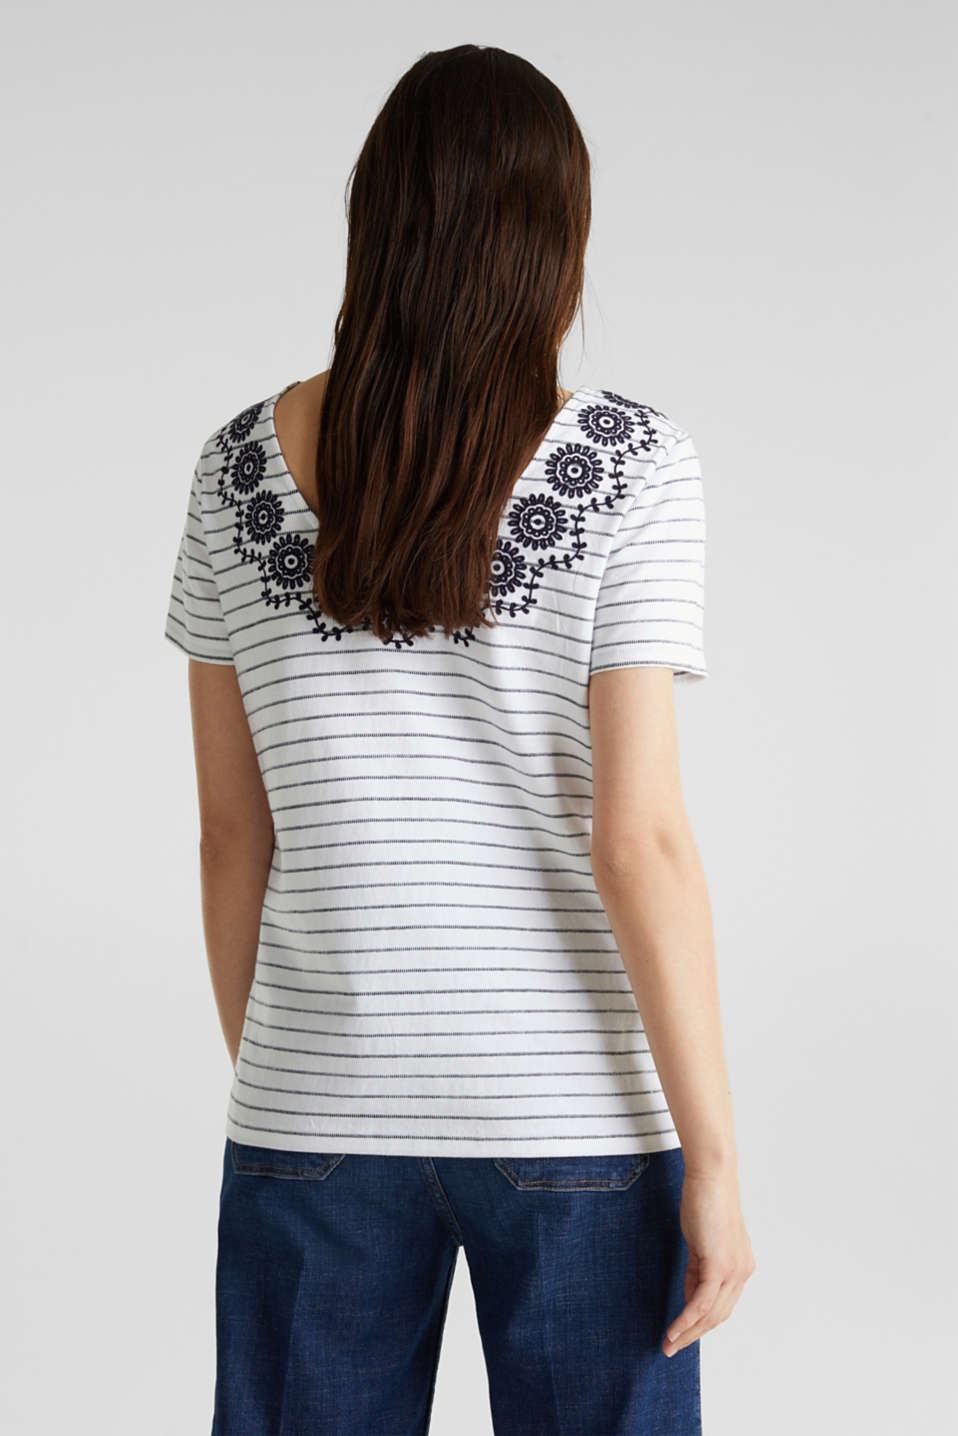 Striped top with embroidery, NAVY, detail image number 3